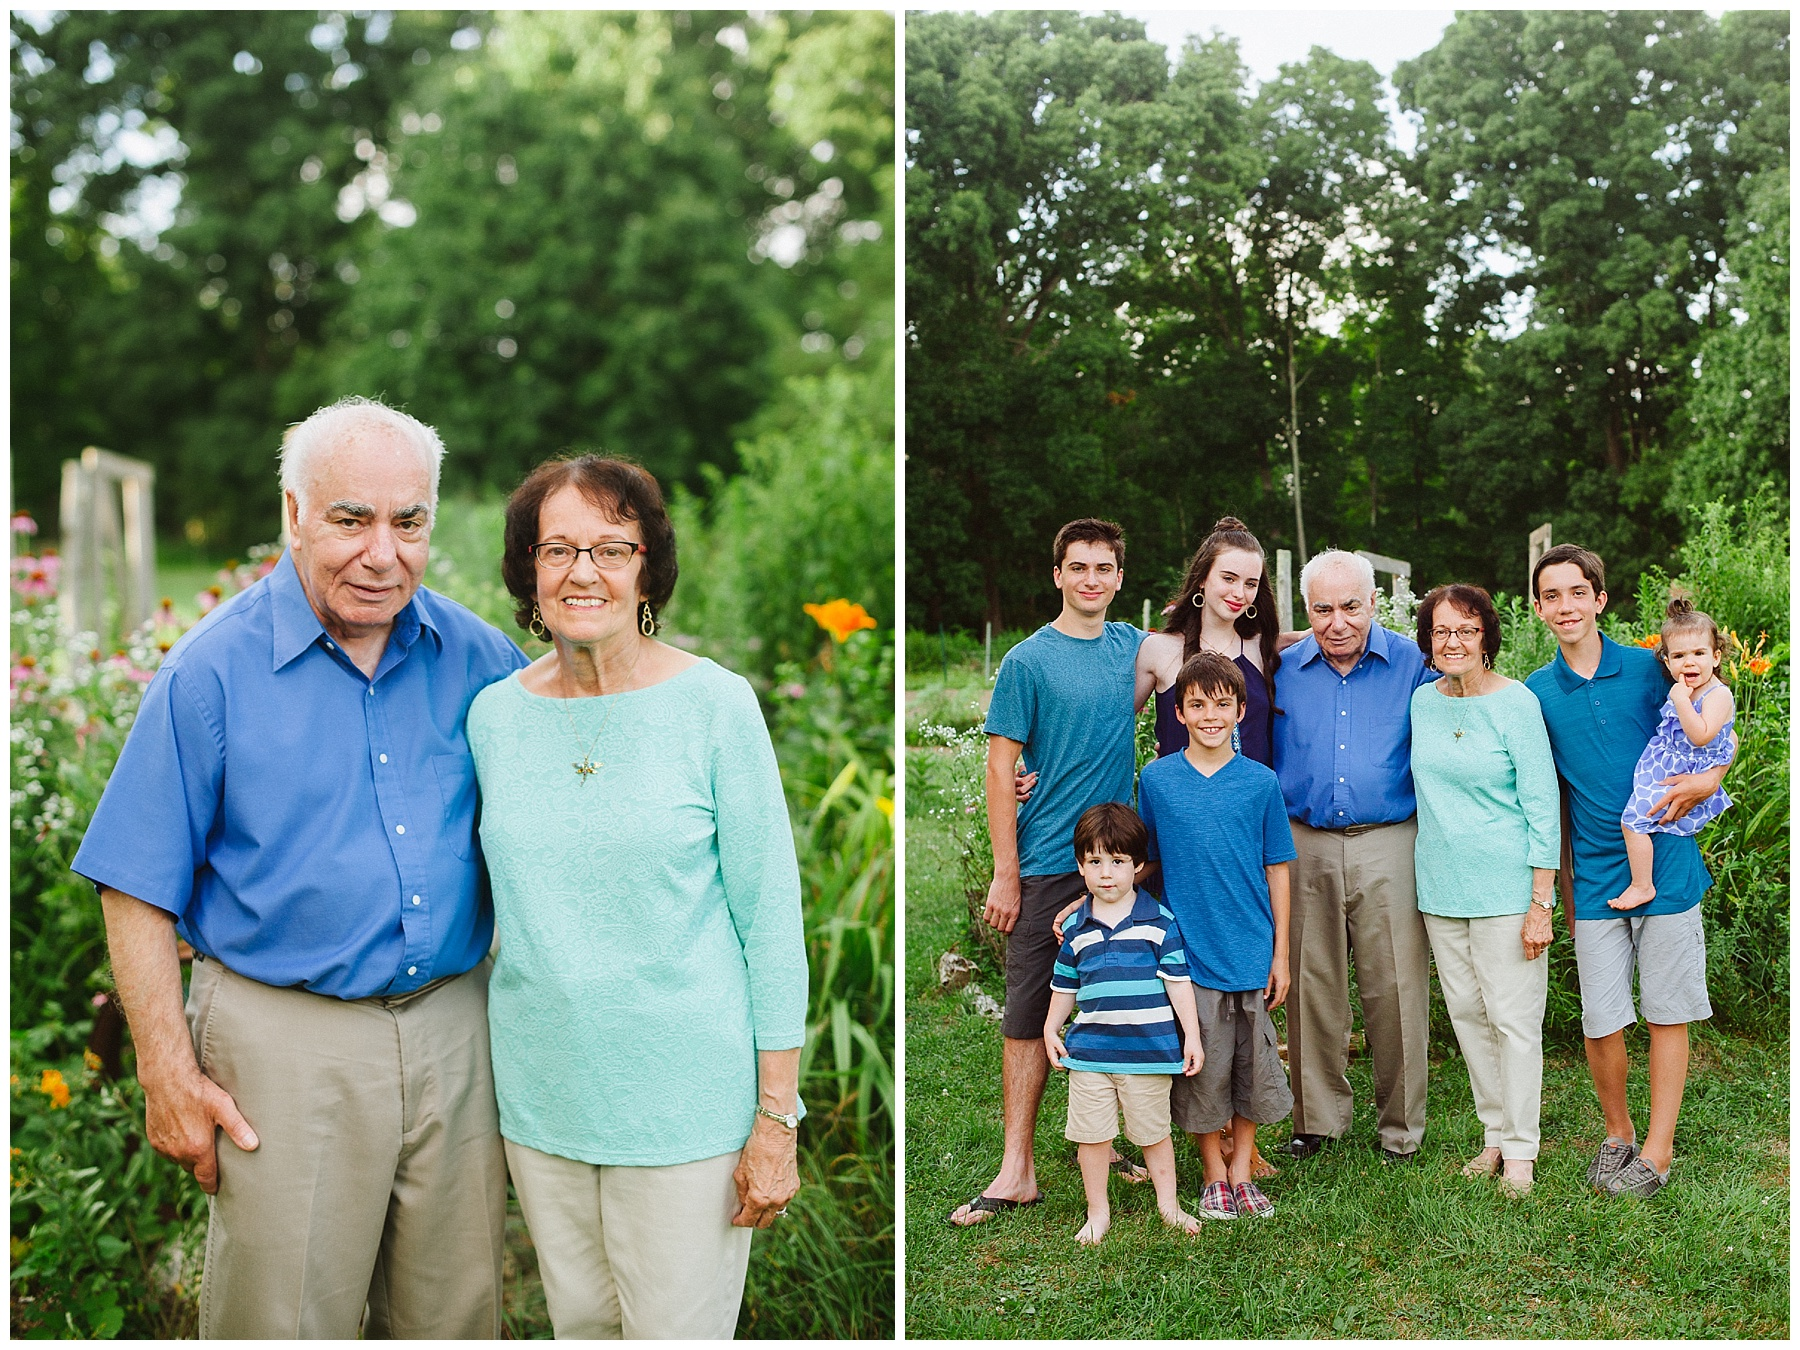 Carlone Family in Massachusetts | Lifestyle Portraits